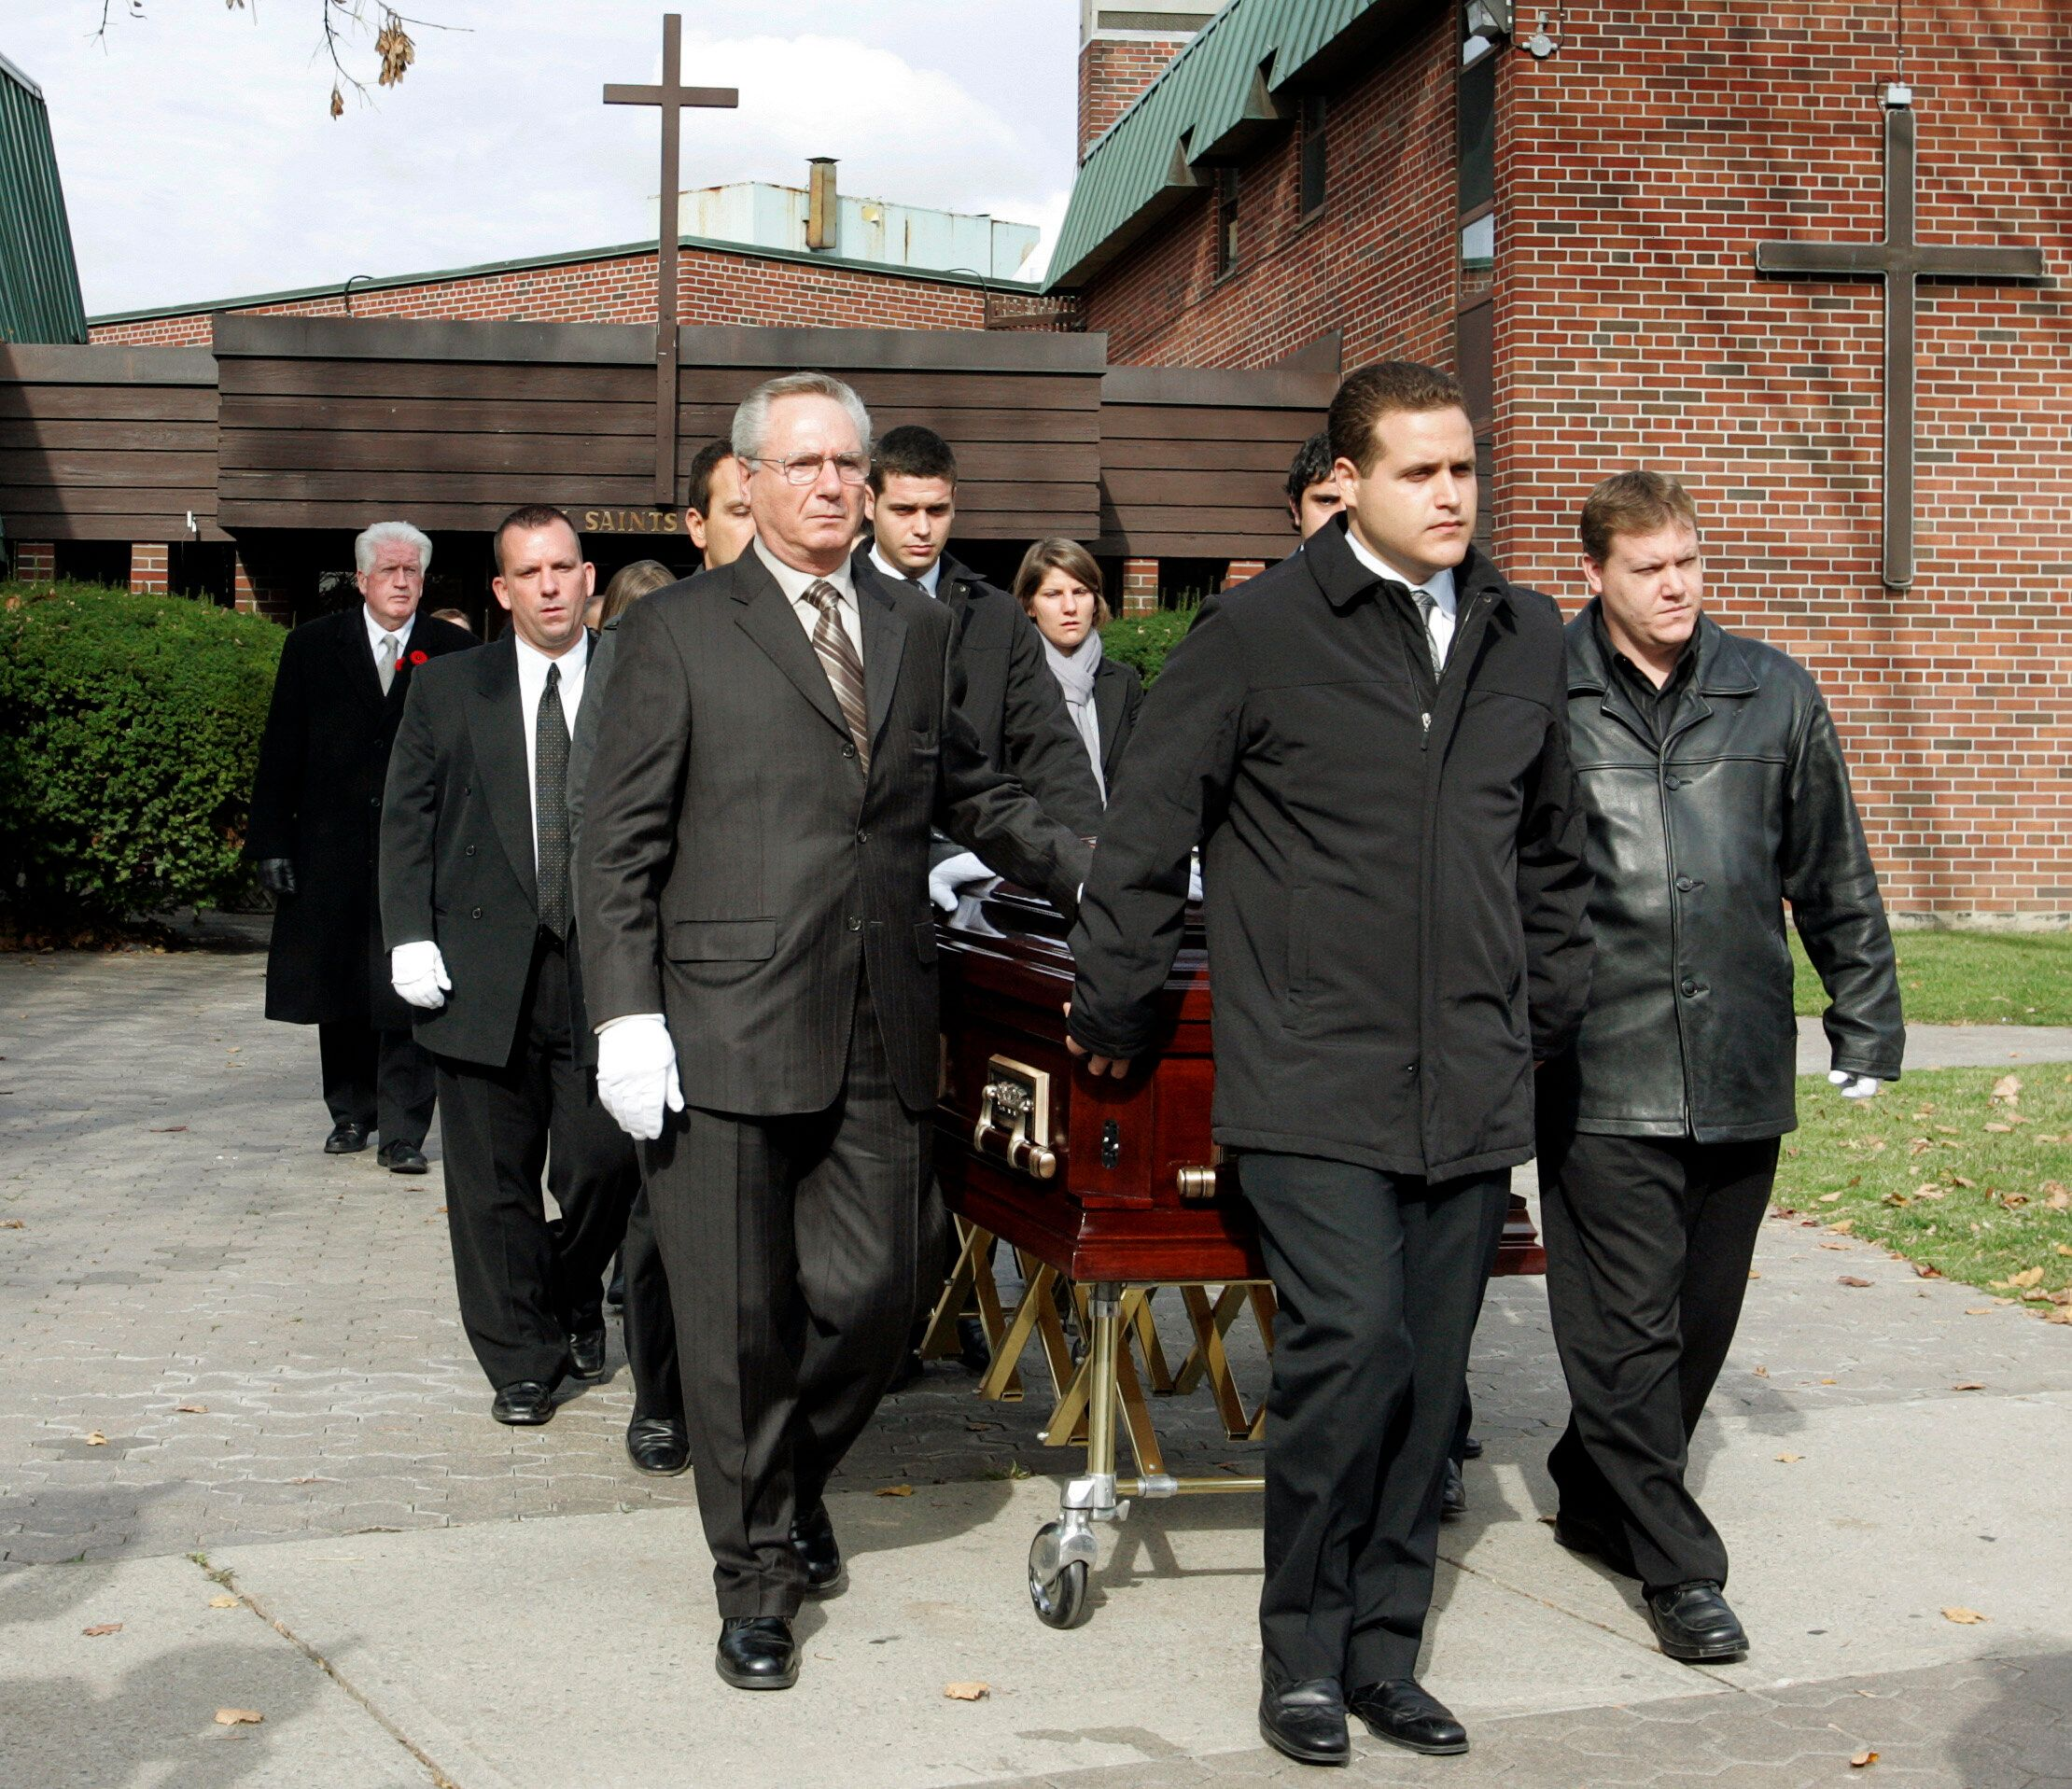 Pallbearers walk with the casket after funeral services for 13-year-old Evan Frustaglio in Toronto on Nov. 2, 2009. Frustagli